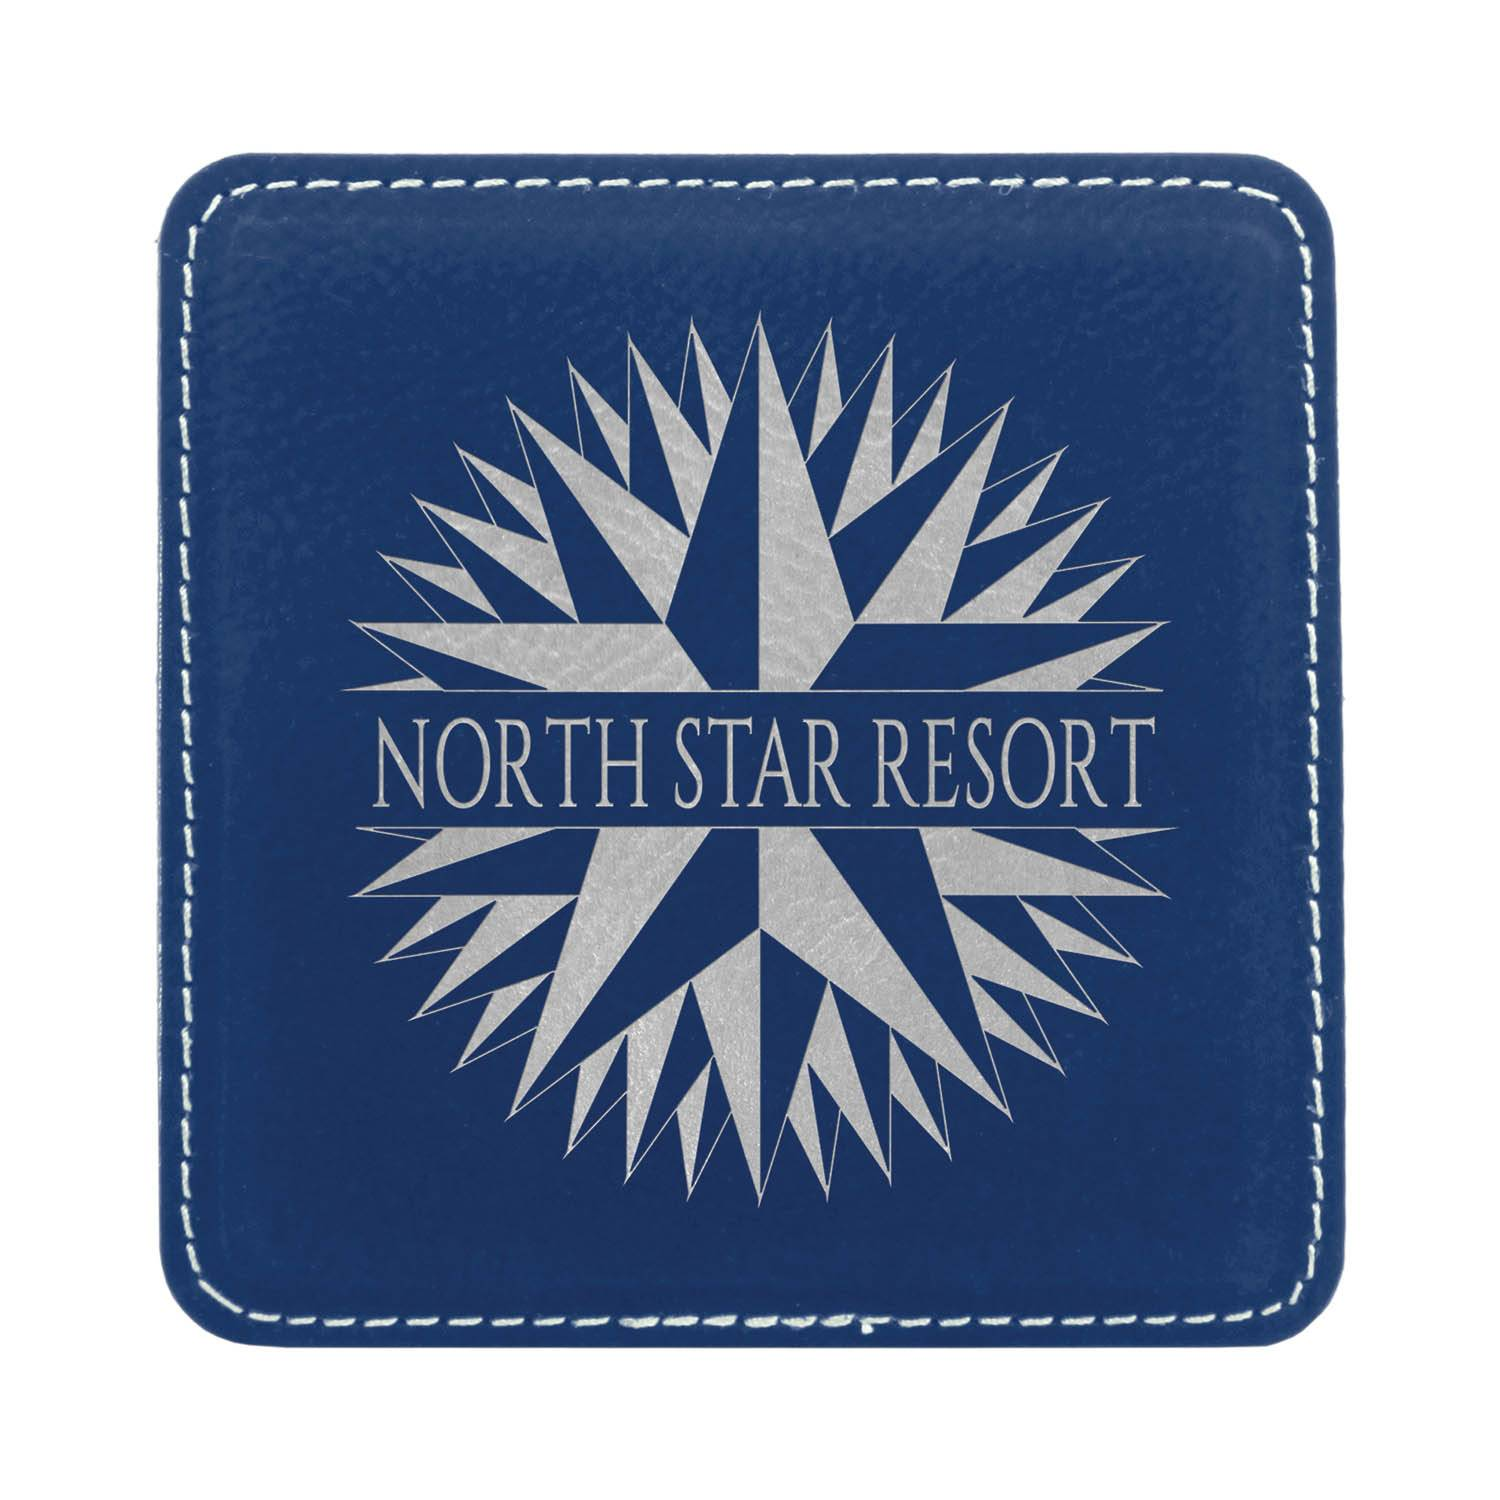 CM241BV - Leatherette Square Coaster